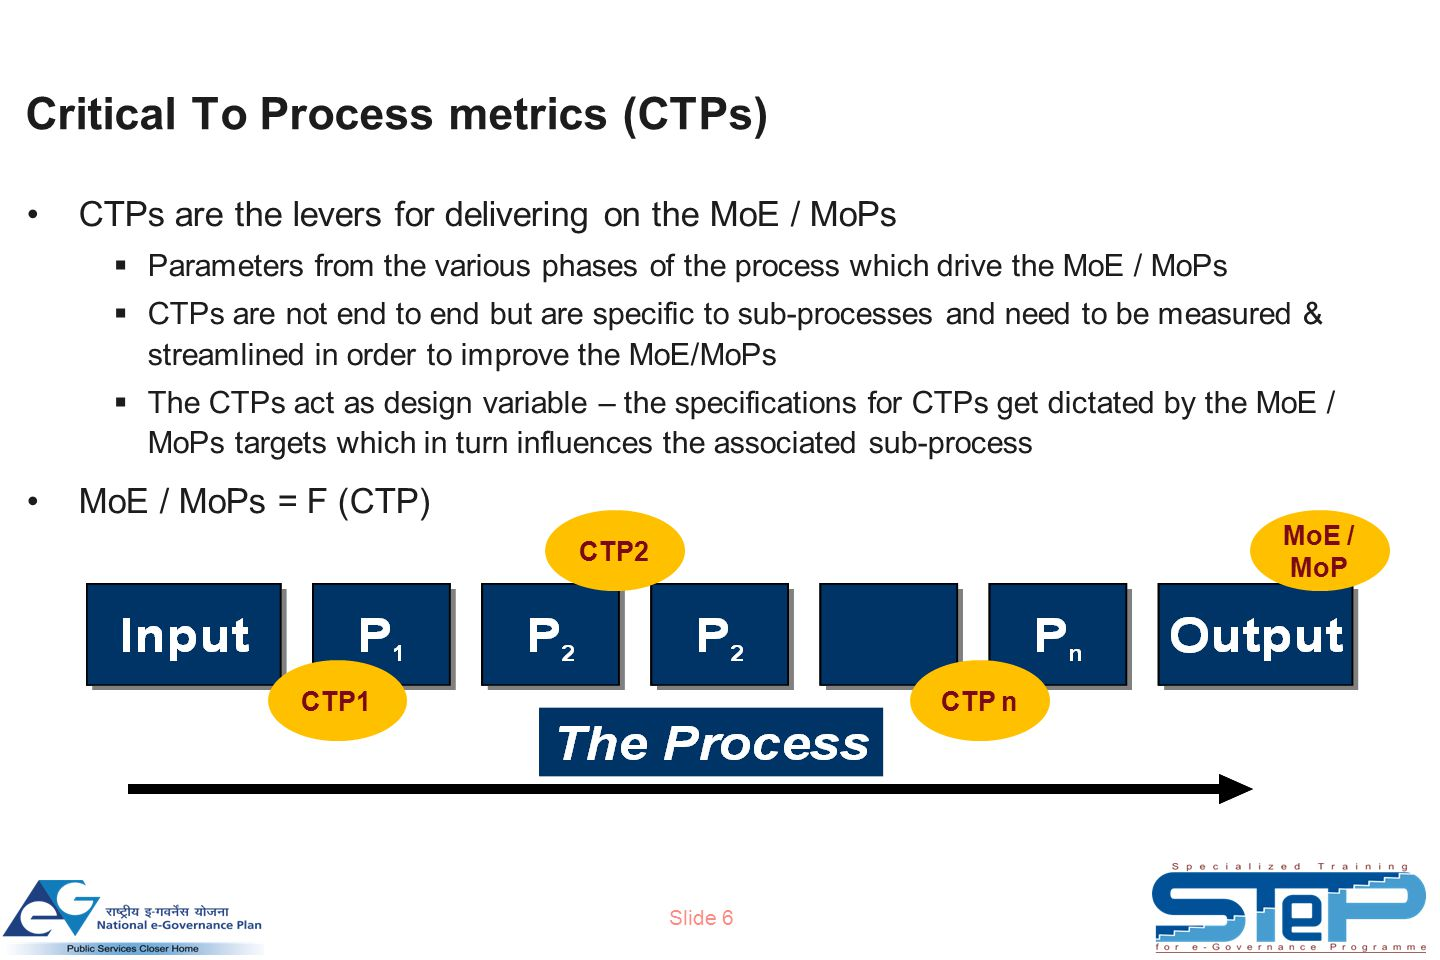 Slide 6 Critical To Process metrics (CTPs) CTPs are the levers for delivering on the MoE / MoPs  Parameters from the various phases of the process which drive the MoE / MoPs  CTPs are not end to end but are specific to sub-processes and need to be measured & streamlined in order to improve the MoE/MoPs  The CTPs act as design variable – the specifications for CTPs get dictated by the MoE / MoPs targets which in turn influences the associated sub-process MoE / MoPs = F (CTP) CTP1 CTP2 CTP n MoE / MoP